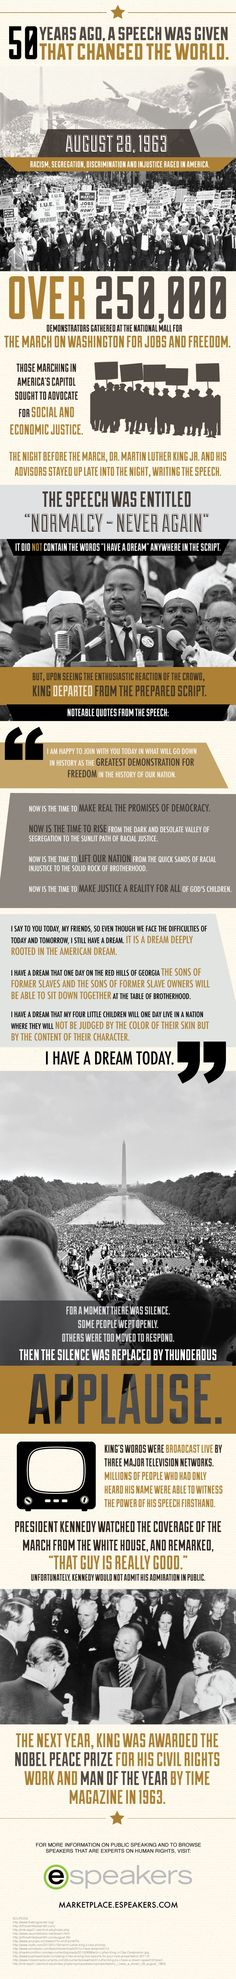 50 years ago a speech was given that would change the world forever - Aug 28 1963 was that day, and we are celebrating 50 years of what MLK did.